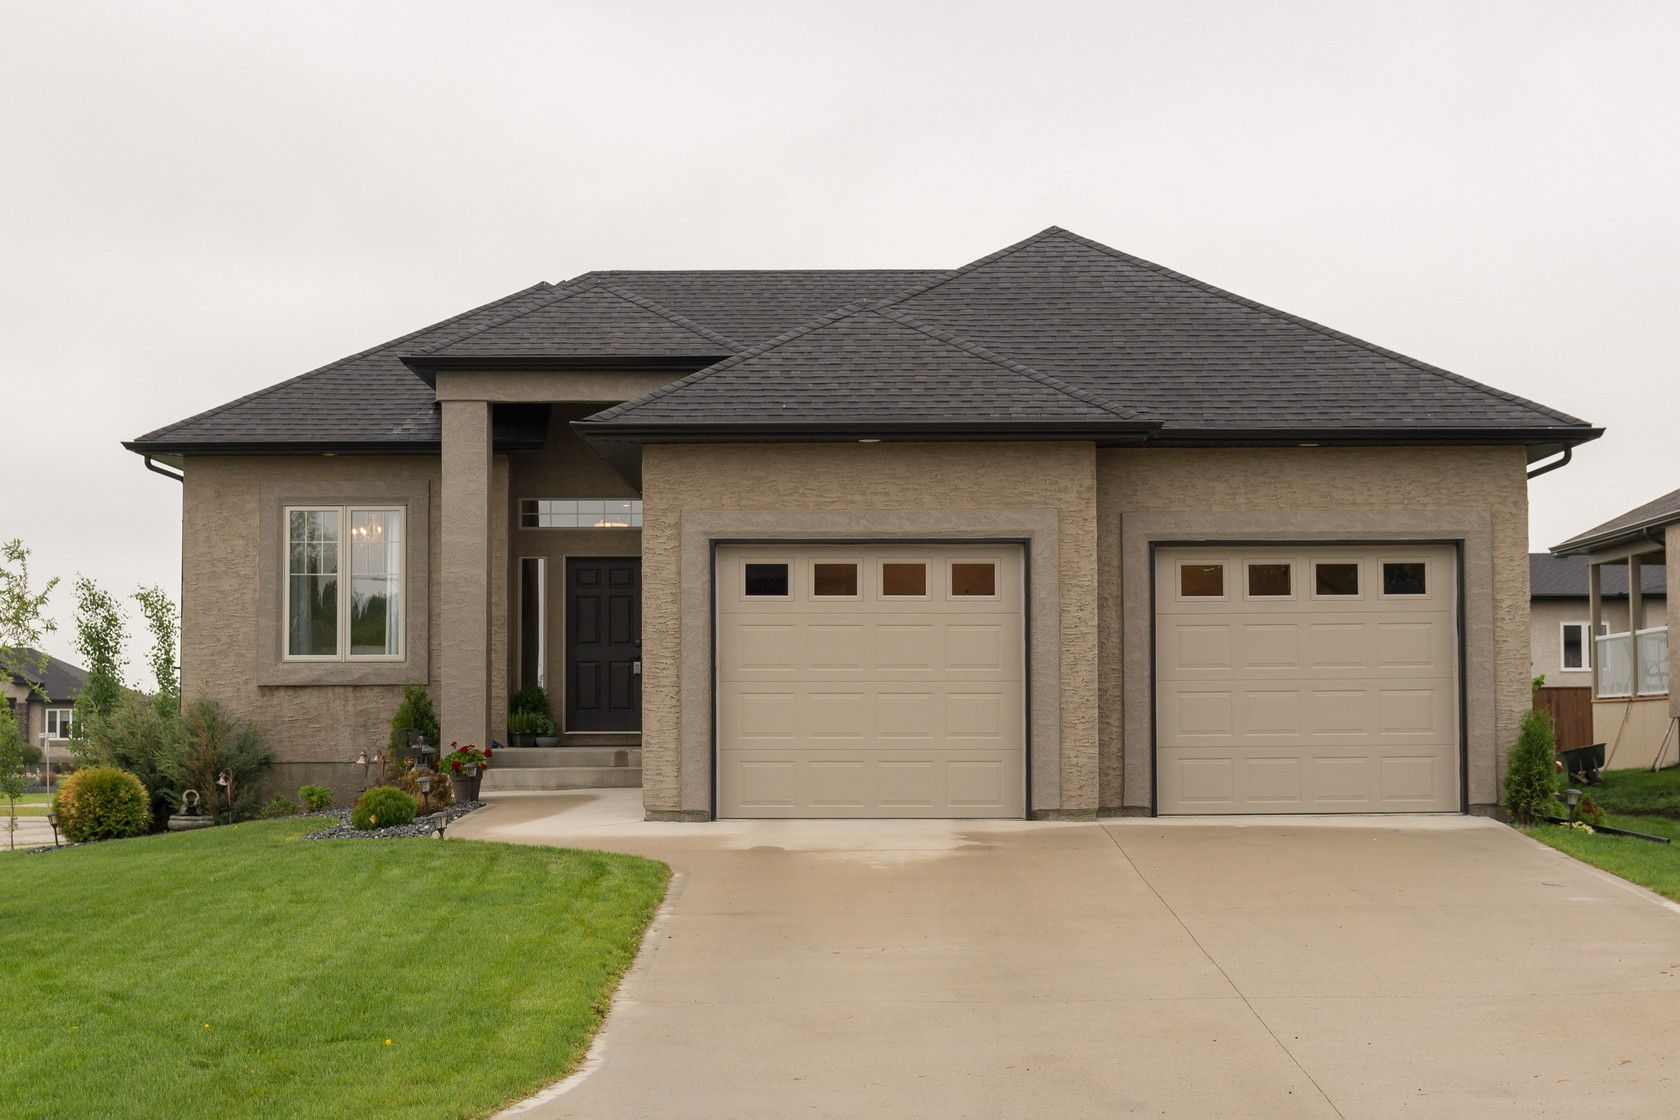 Main Photo: 2 Lowe Crescent: Oakbank Single Family Detached for sale (R04)  : MLS®# 1814754